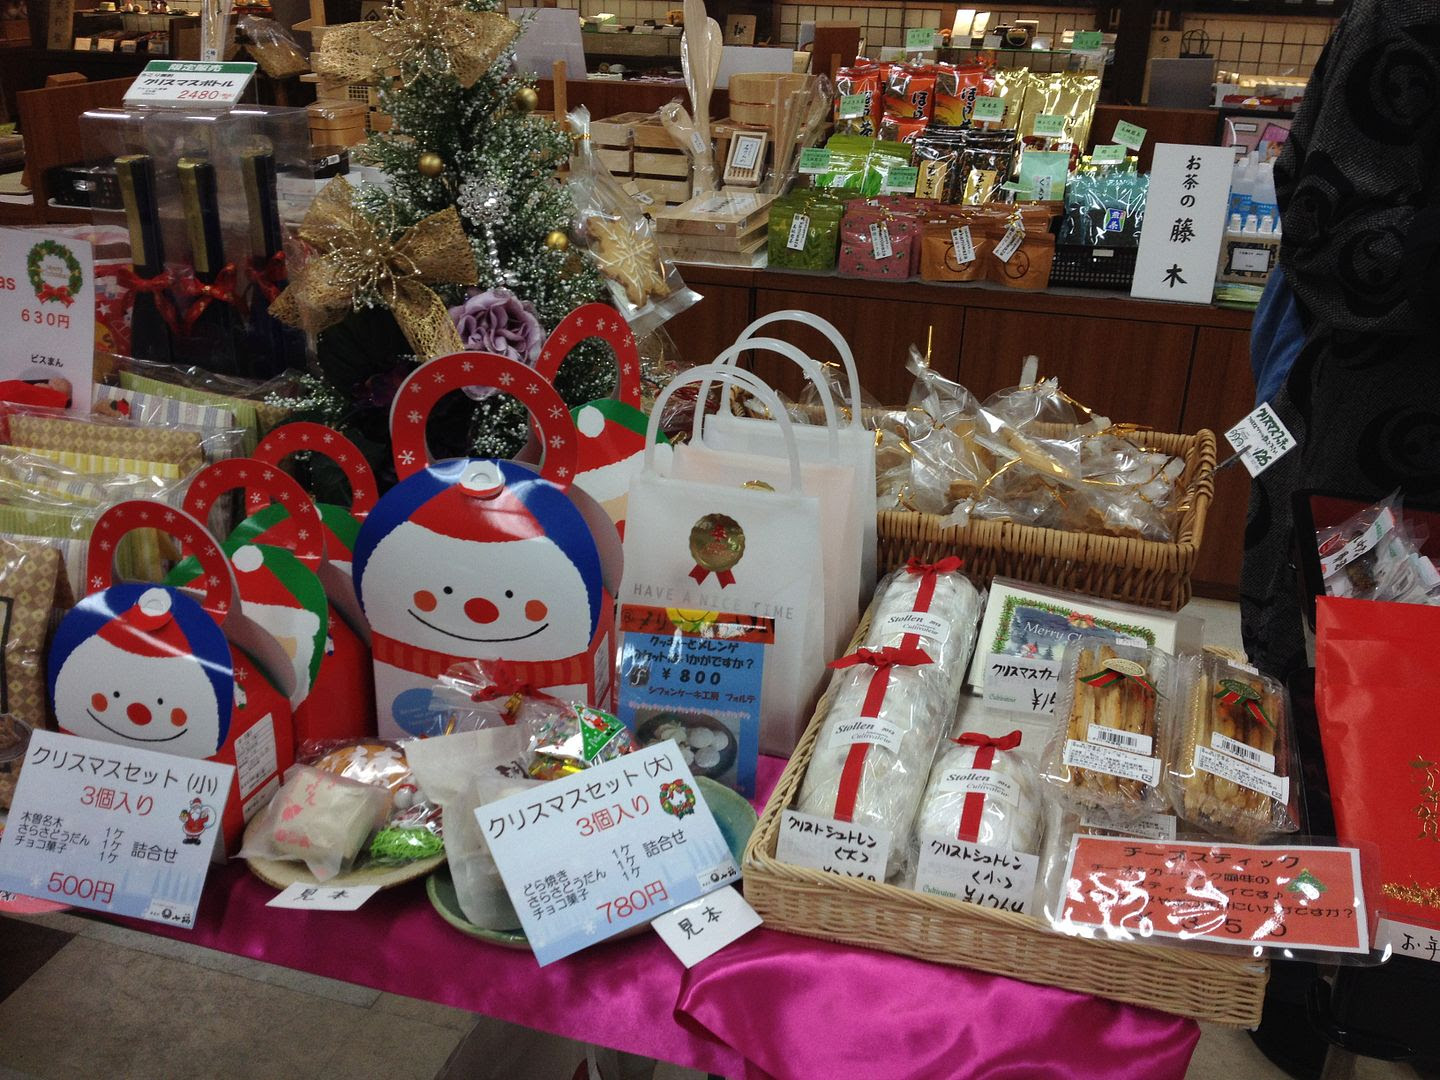 Nakatsugawa Christmas Market (with Stollen!) photo 2013-12-21092205_zpsaaff1ad0.jpg